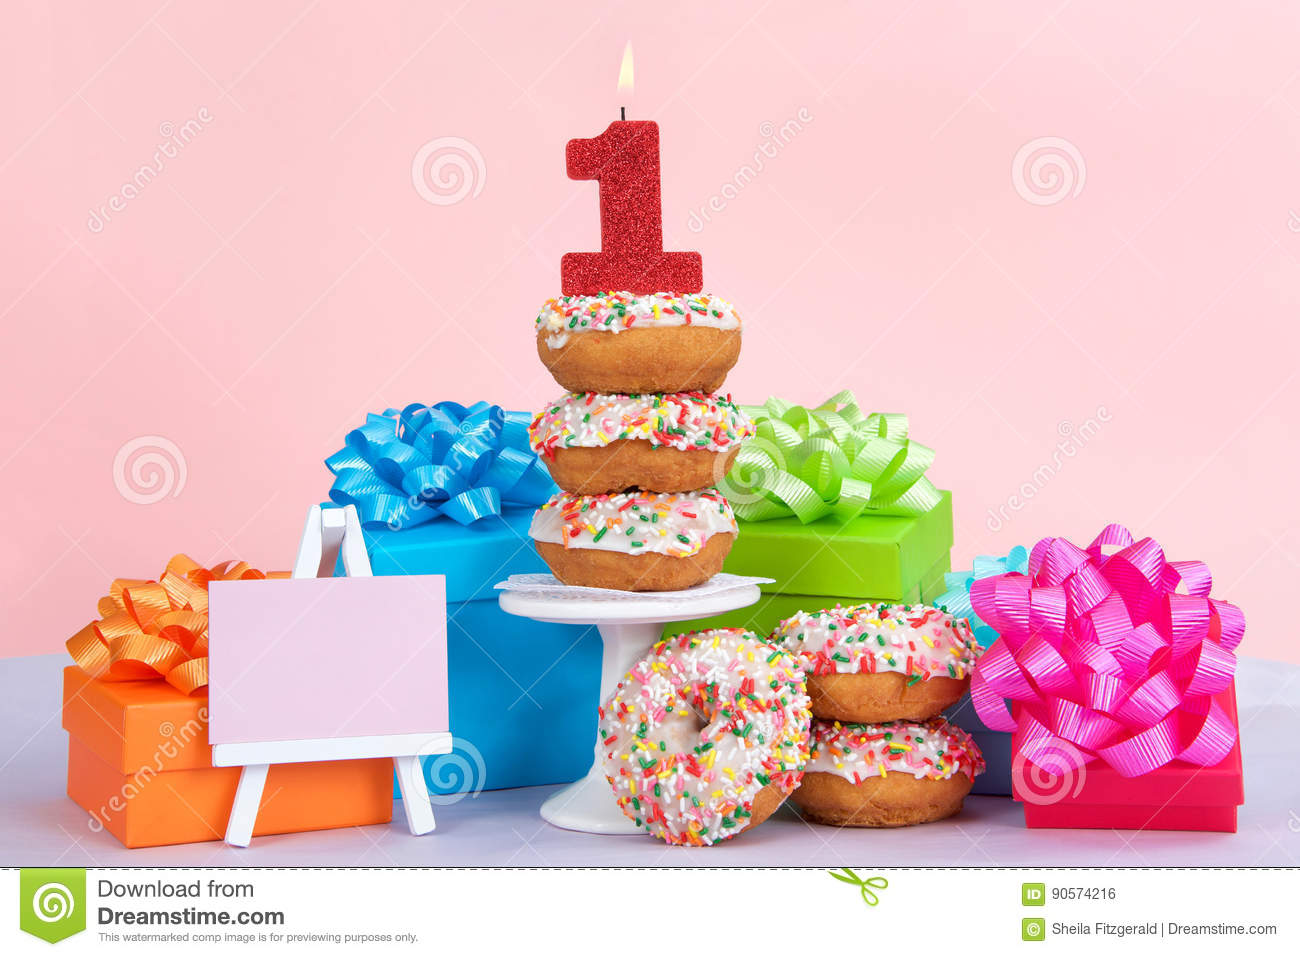 Cake Donuts With White Frosting And Colorful Sprinkles Stacked On Around A Small Pedestal Surrounded By Birthday Presents Number 1 Candle Burning For